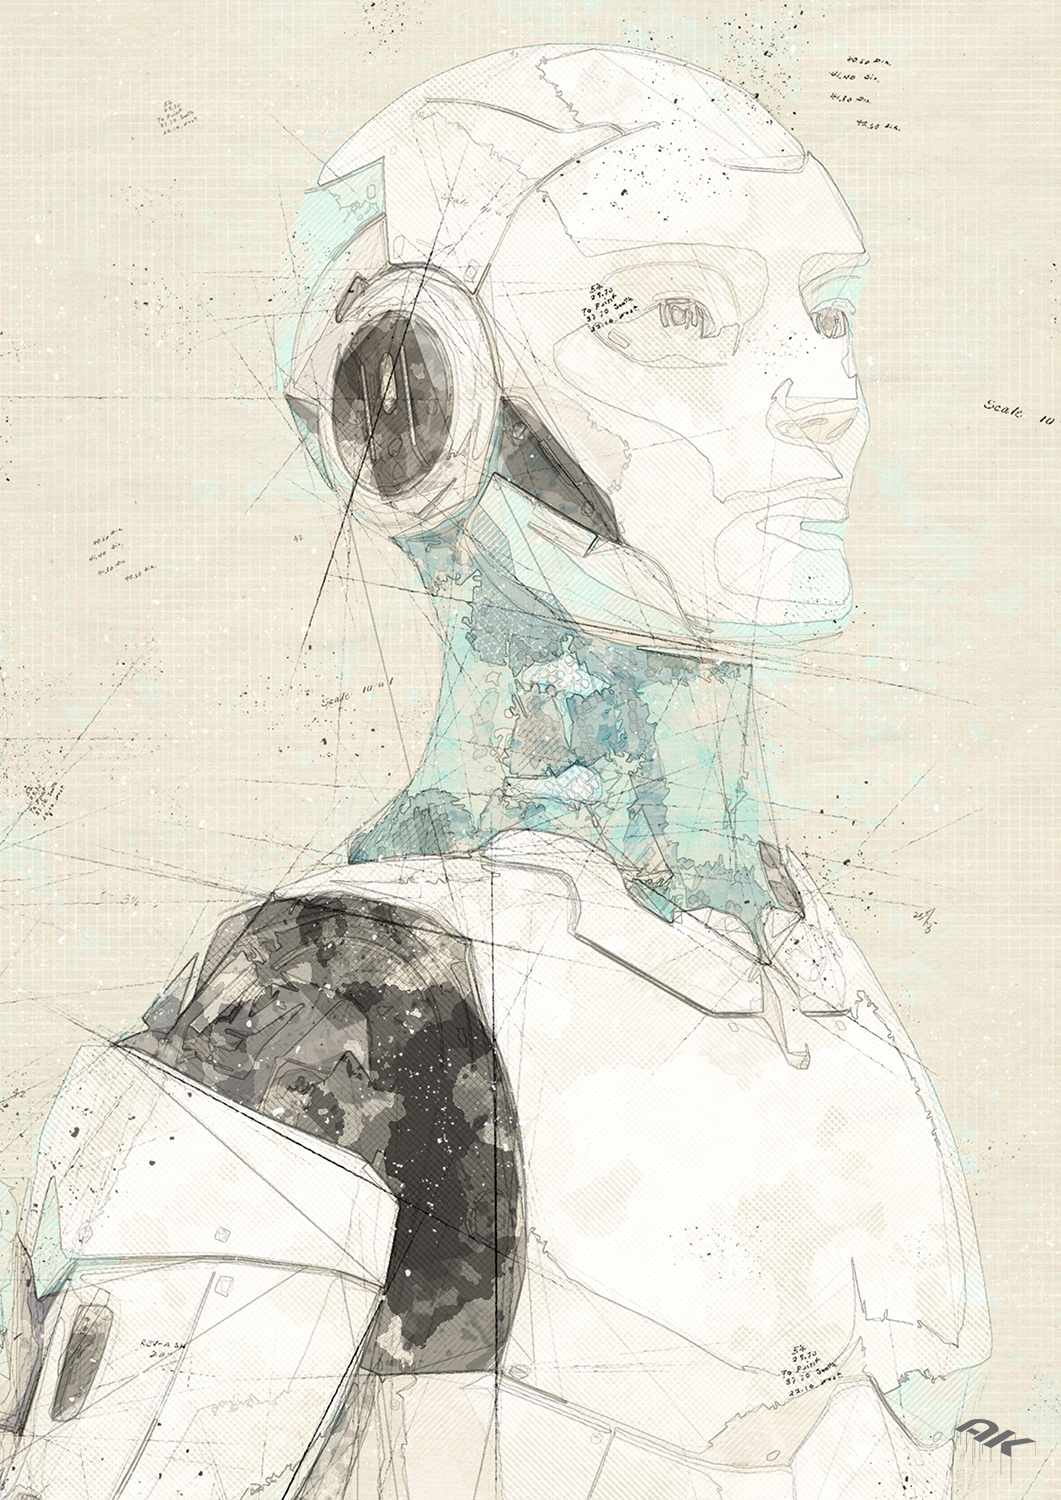 cyborg-robot-drawing-13-copyright-andrew-knutt